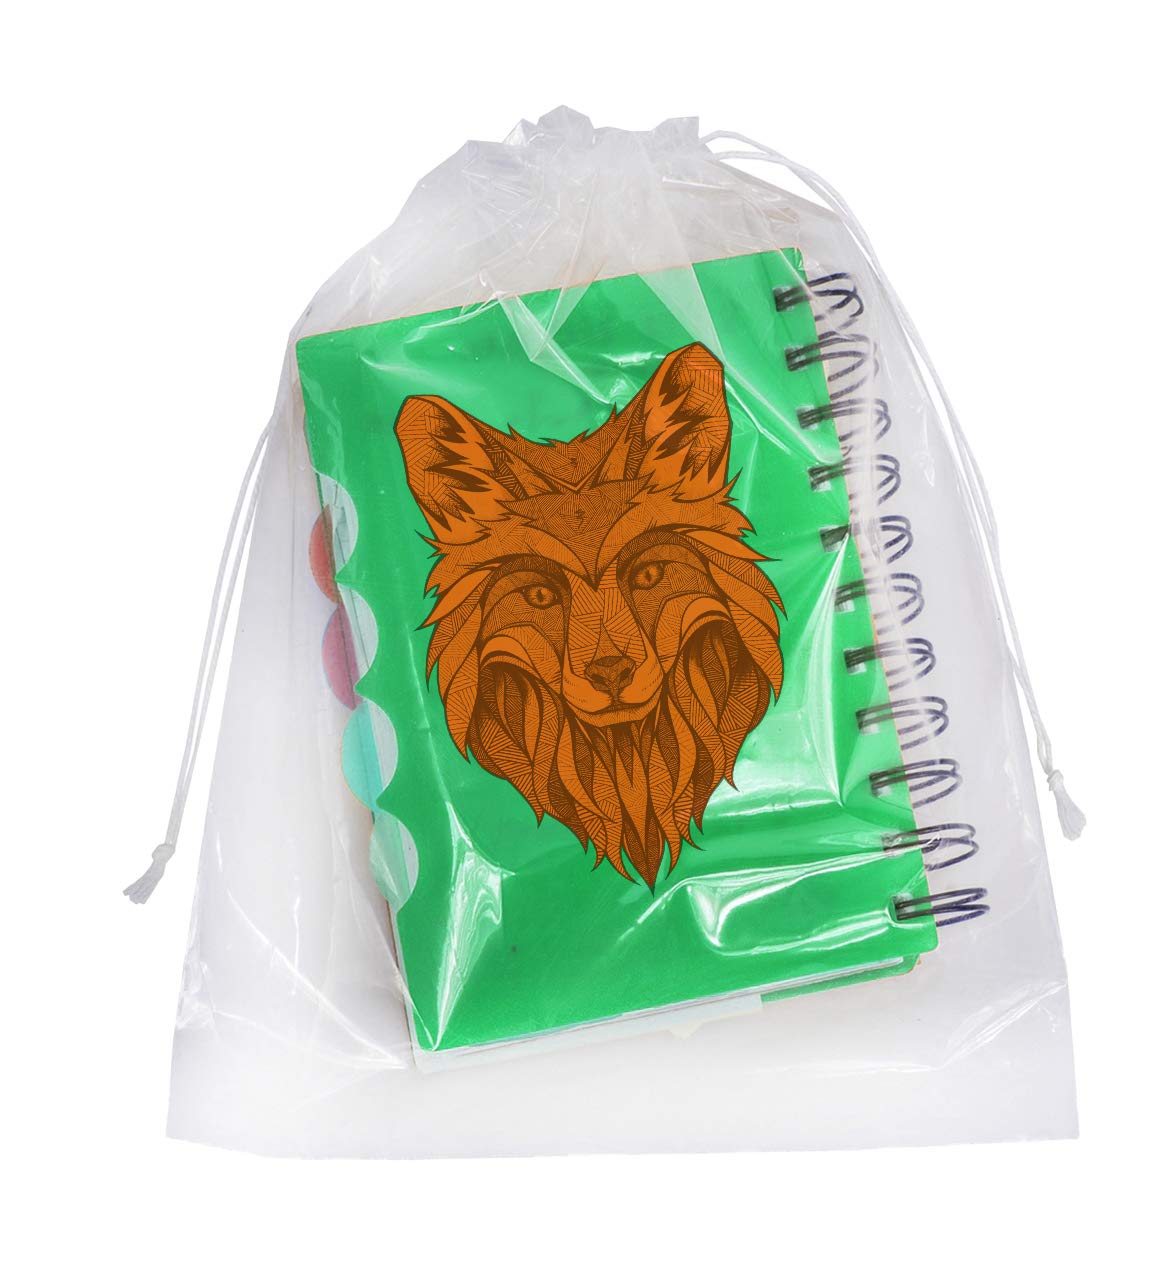 APQ Pack of 50 Clear Drawstring Bags 10 x 14. Double Cotton Drawstrings Polyethylene Bags 10x14. Thickness 2 mil. Plastic Bags for Packing and Storing. Ideal for Industrial and Business Applications. by APQ Supply